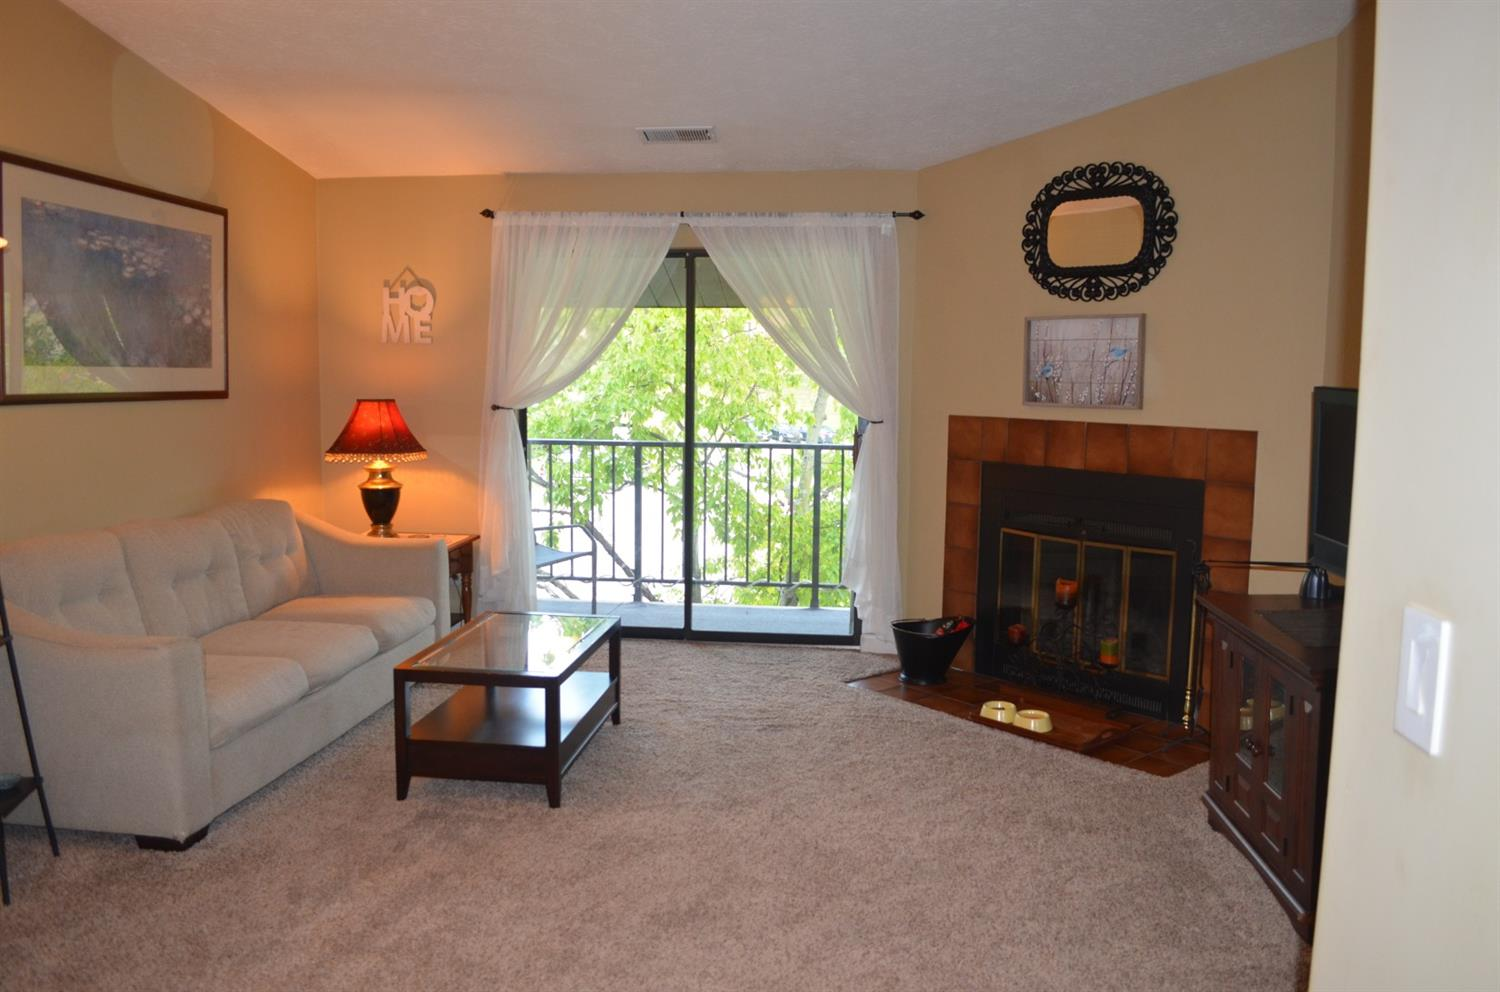 Photo 3 for 7240 Creekview Dr #12 Colerain Twp.West, OH 45247